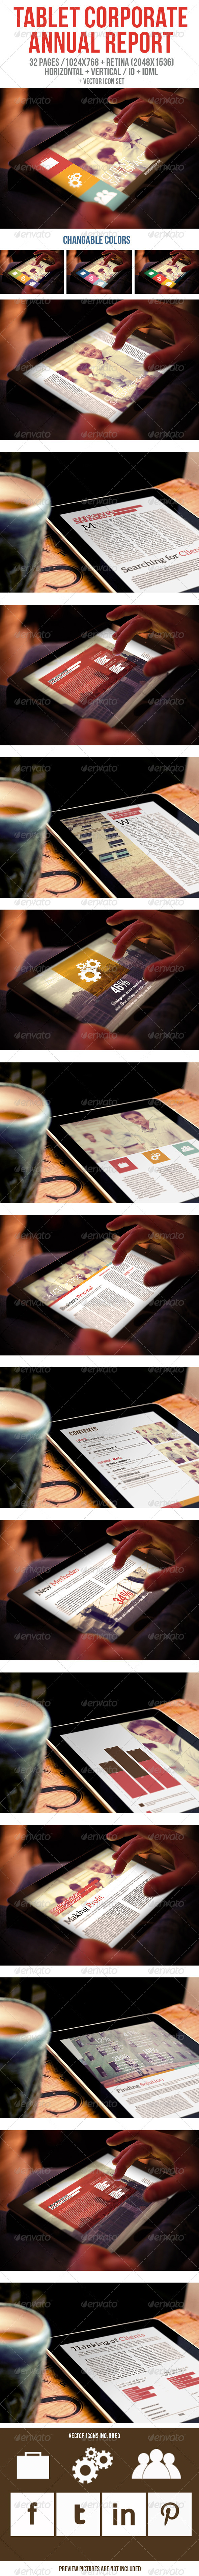 iPad & Tablet Corporate Annual Report - Digital Magazines ePublishing